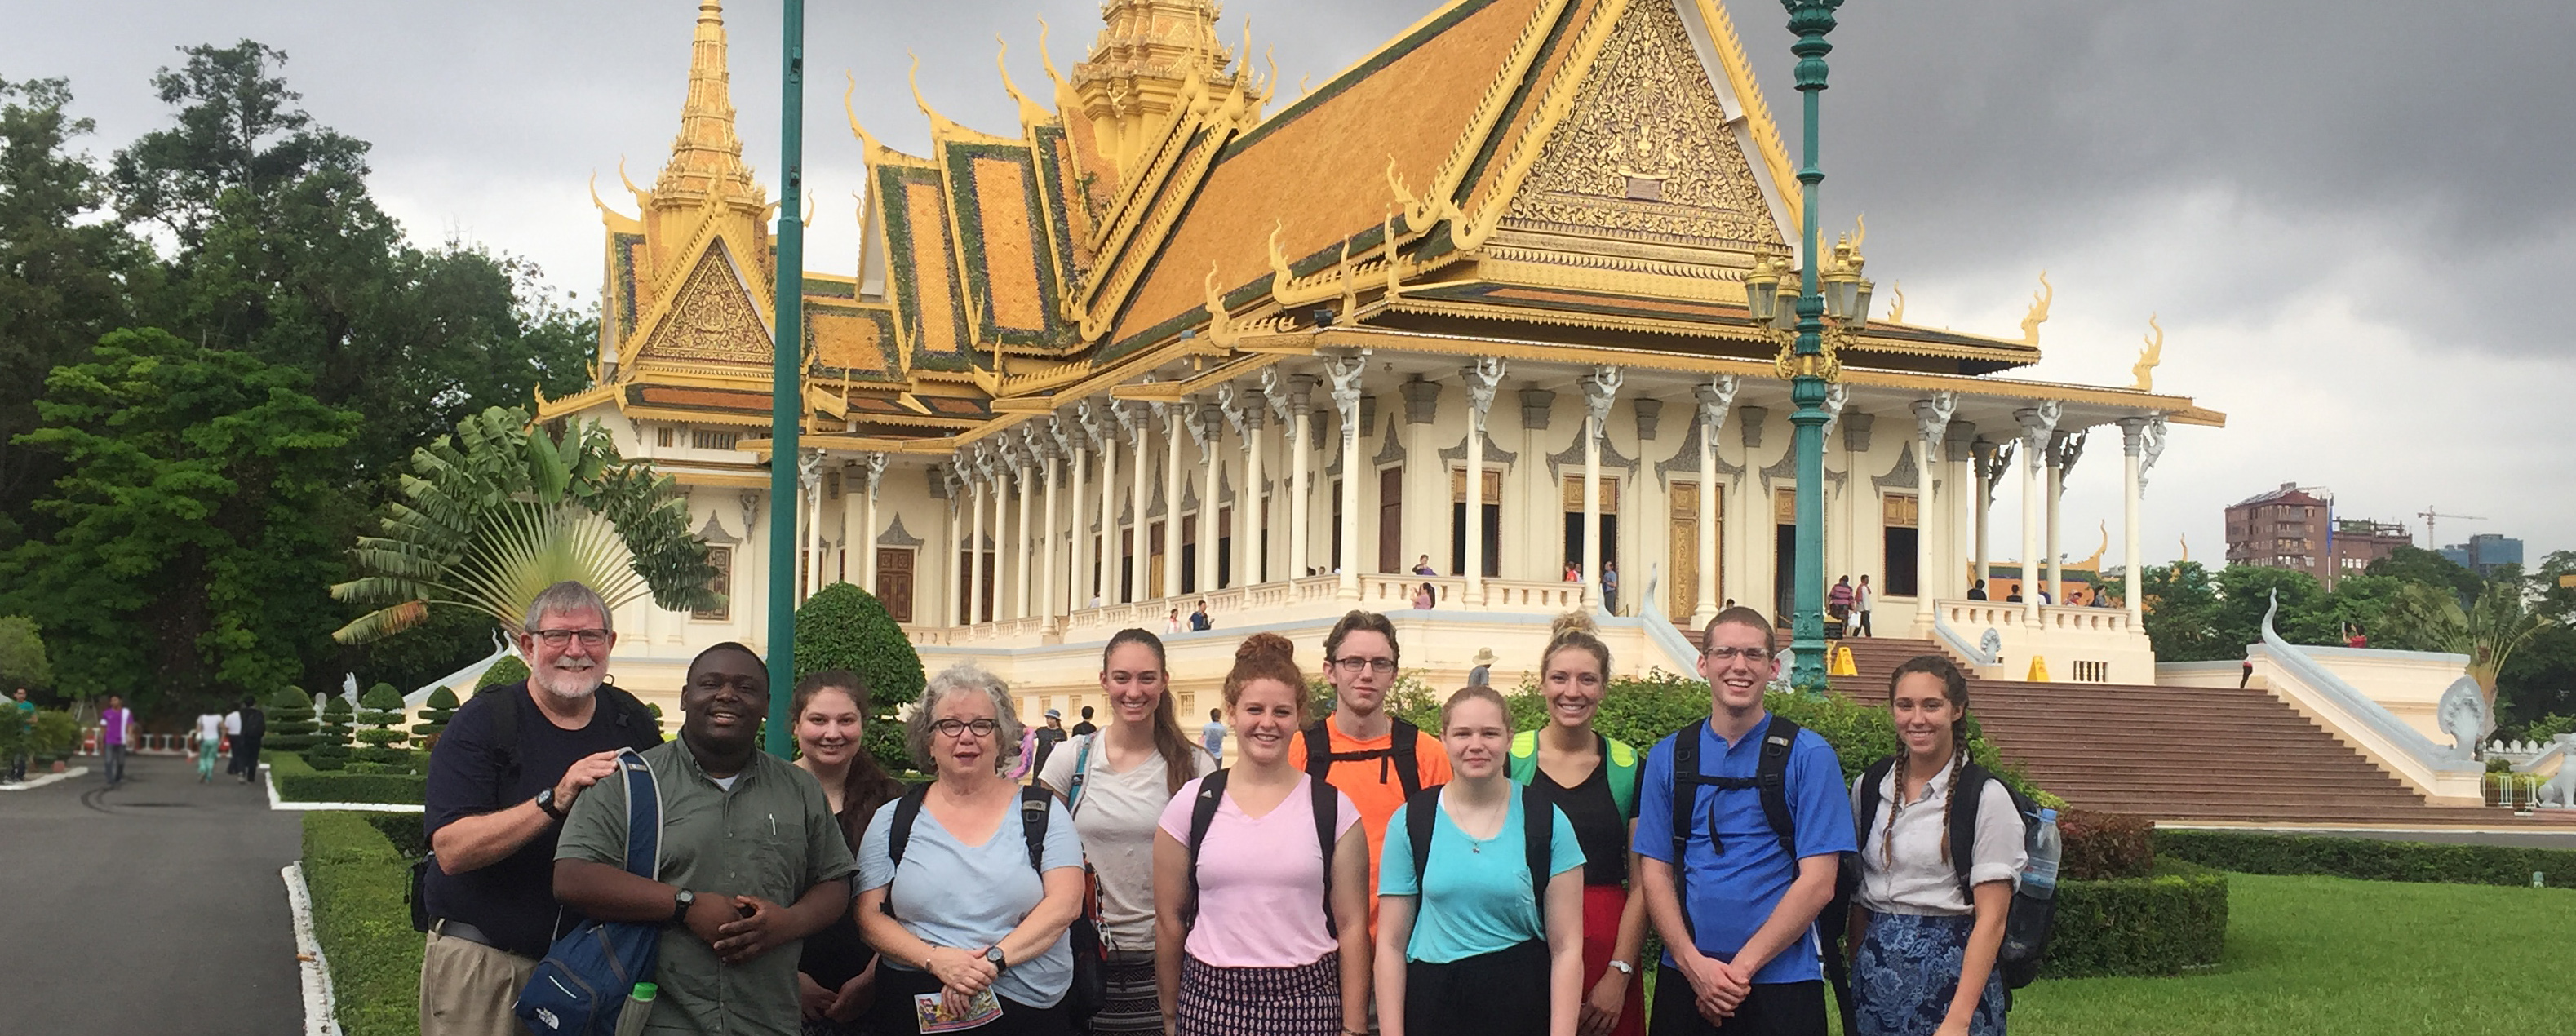 11 individuals from Defiance College wearing all different and brightly colored shirts with backpacks. They are gathered together to smile at the camera, standing in front of a large pale yellow building with a tall golden roof. The building is the Silver Pagoda in Cambodia.